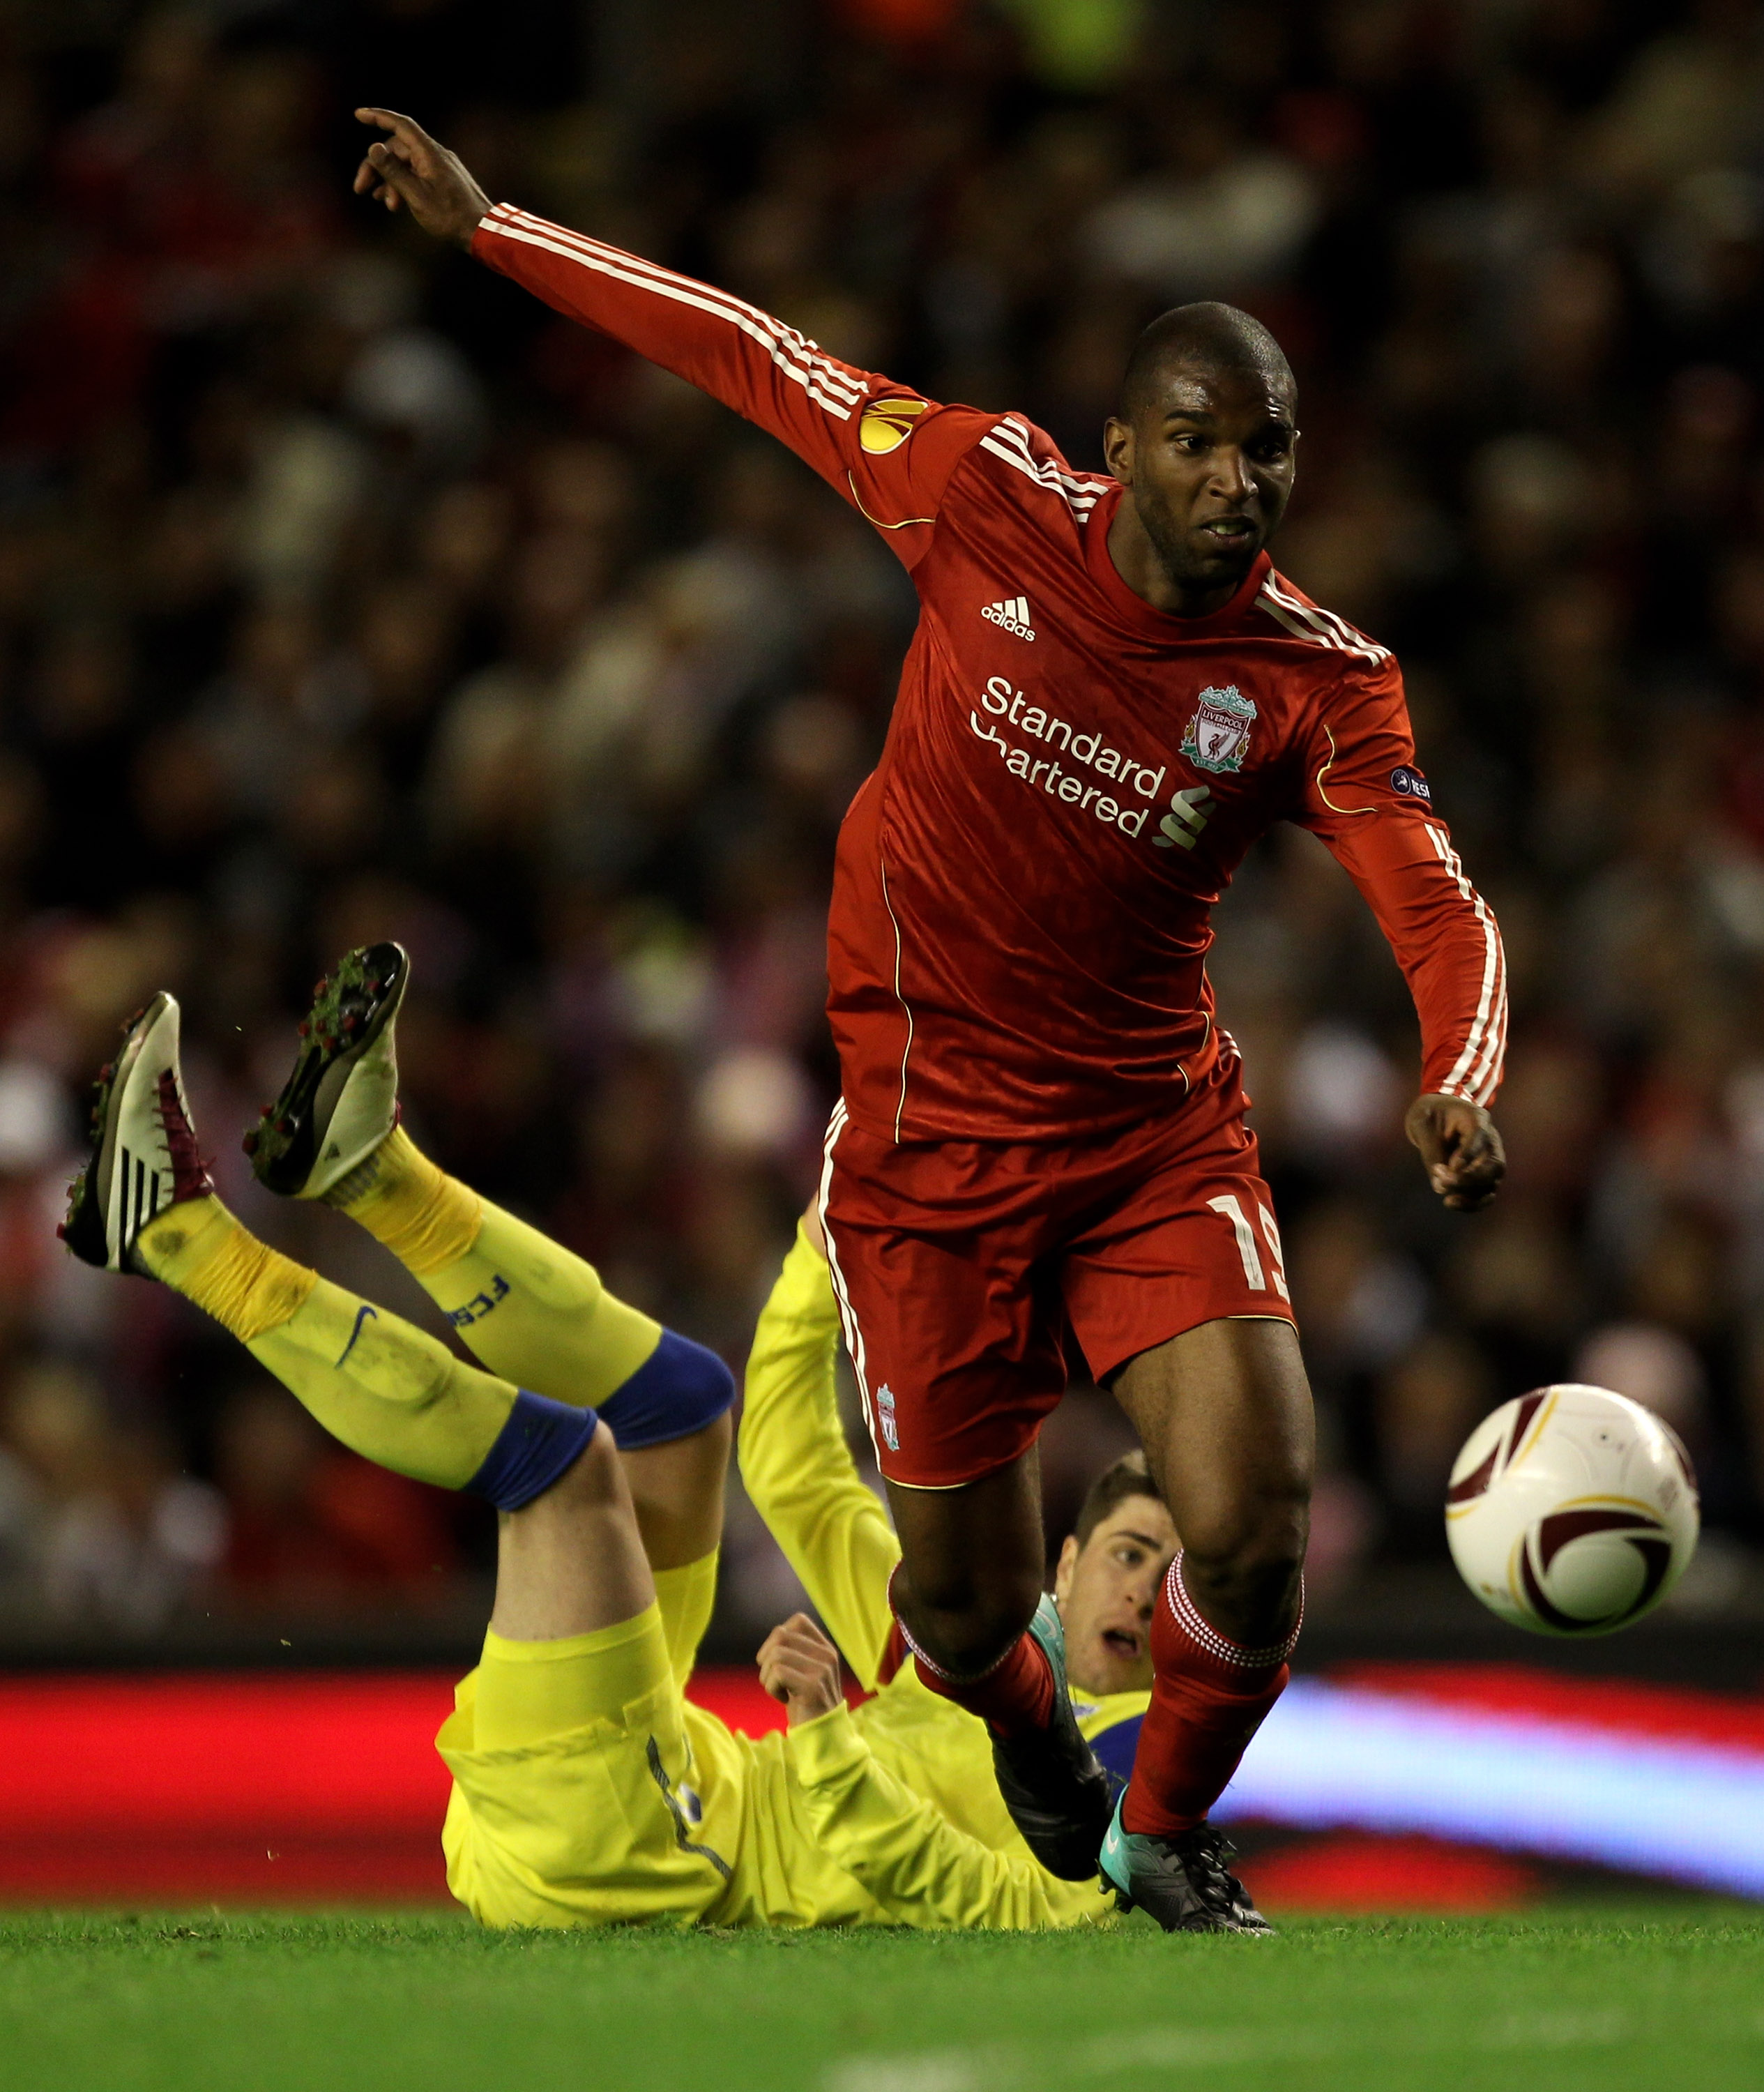 LIVERPOOL, ENGLAND - SEPTEMBER 16 :  Ryan Babel of Liverpool goes past Mihai Radut of Steaua Bucharest during the UEFA Europa League Group K match beteween Liverpool and Steaua Bucharest at Anfield on September 16, 2010 in Liverpool, England.  (Photo by A